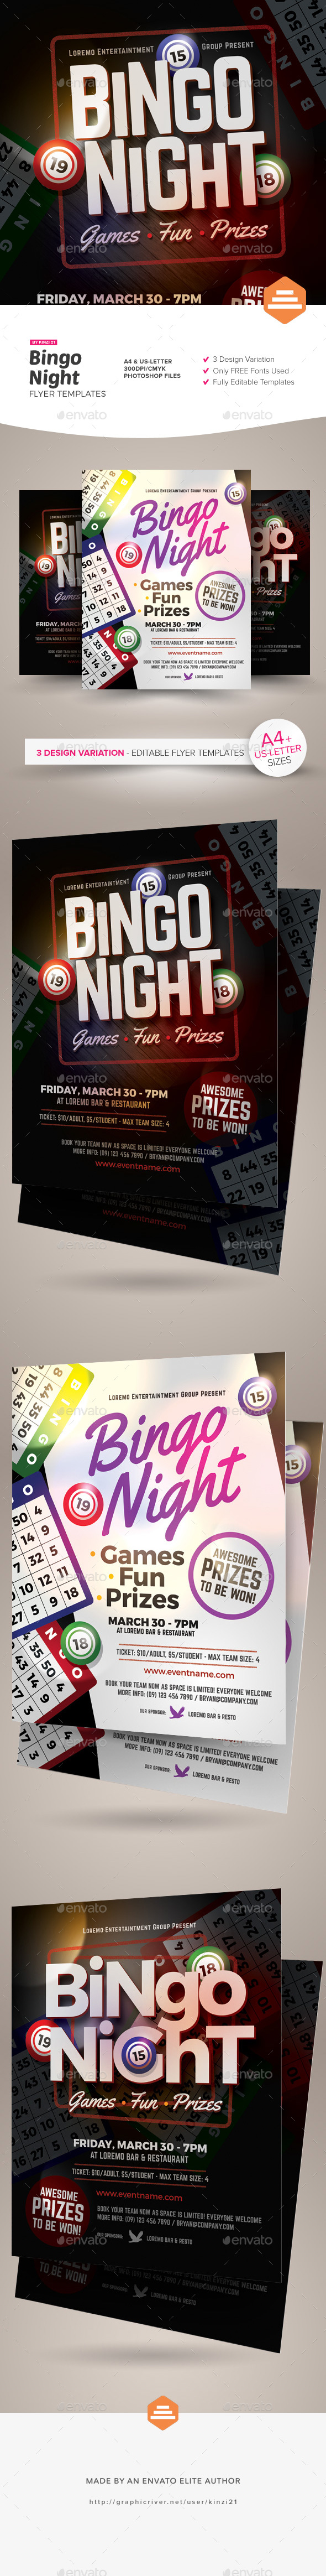 Lottery Graphics, Designs & Templates from GraphicRiver